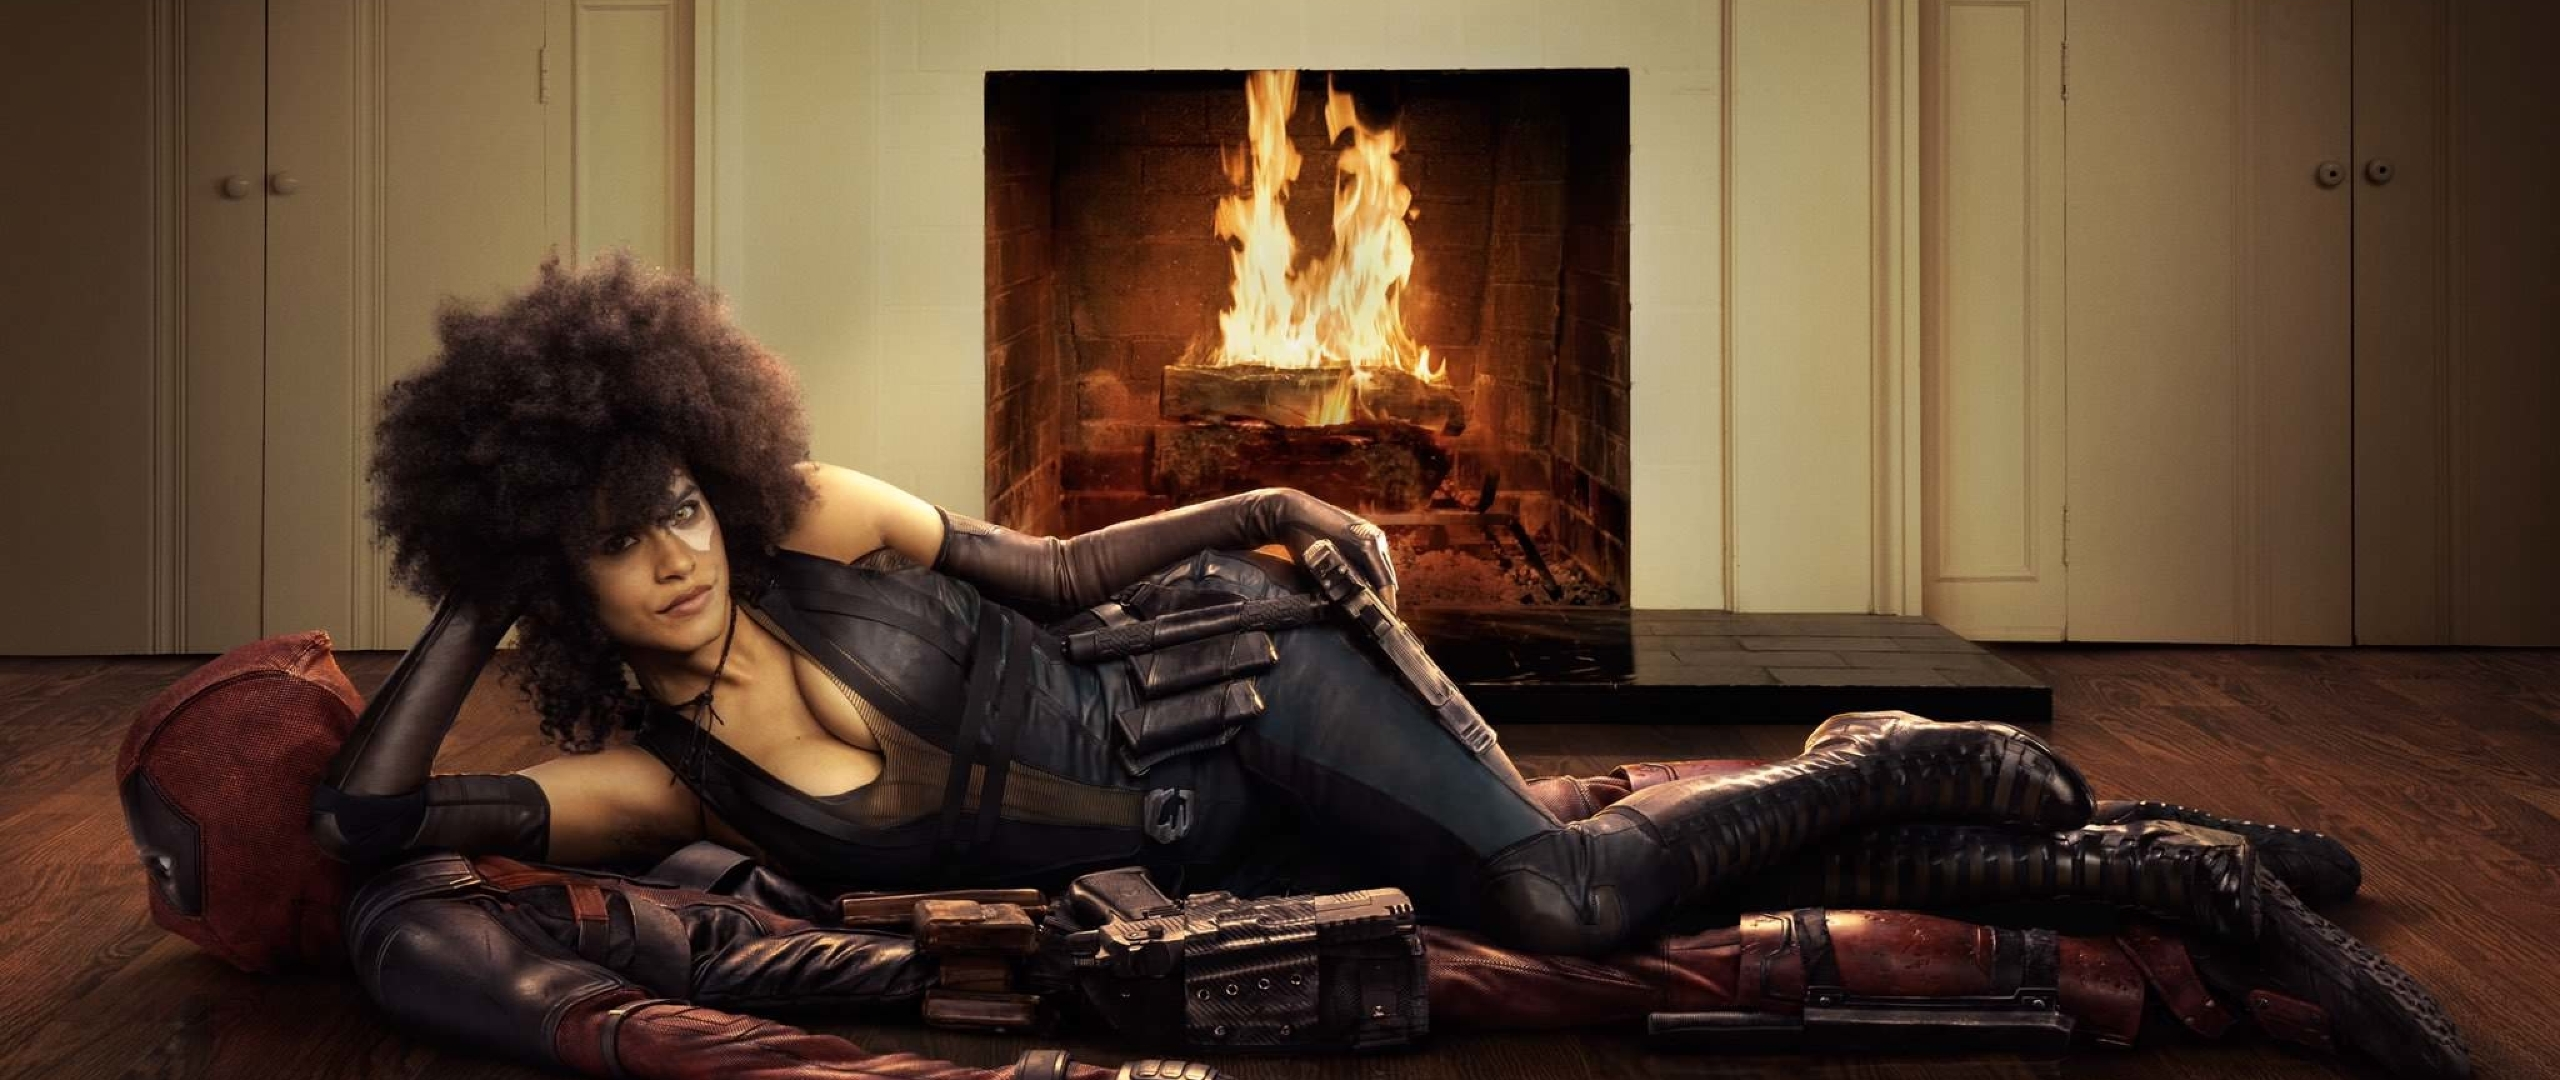 Xperia Wallpaper 1920x1080 Zazie Beetz As Domino ...